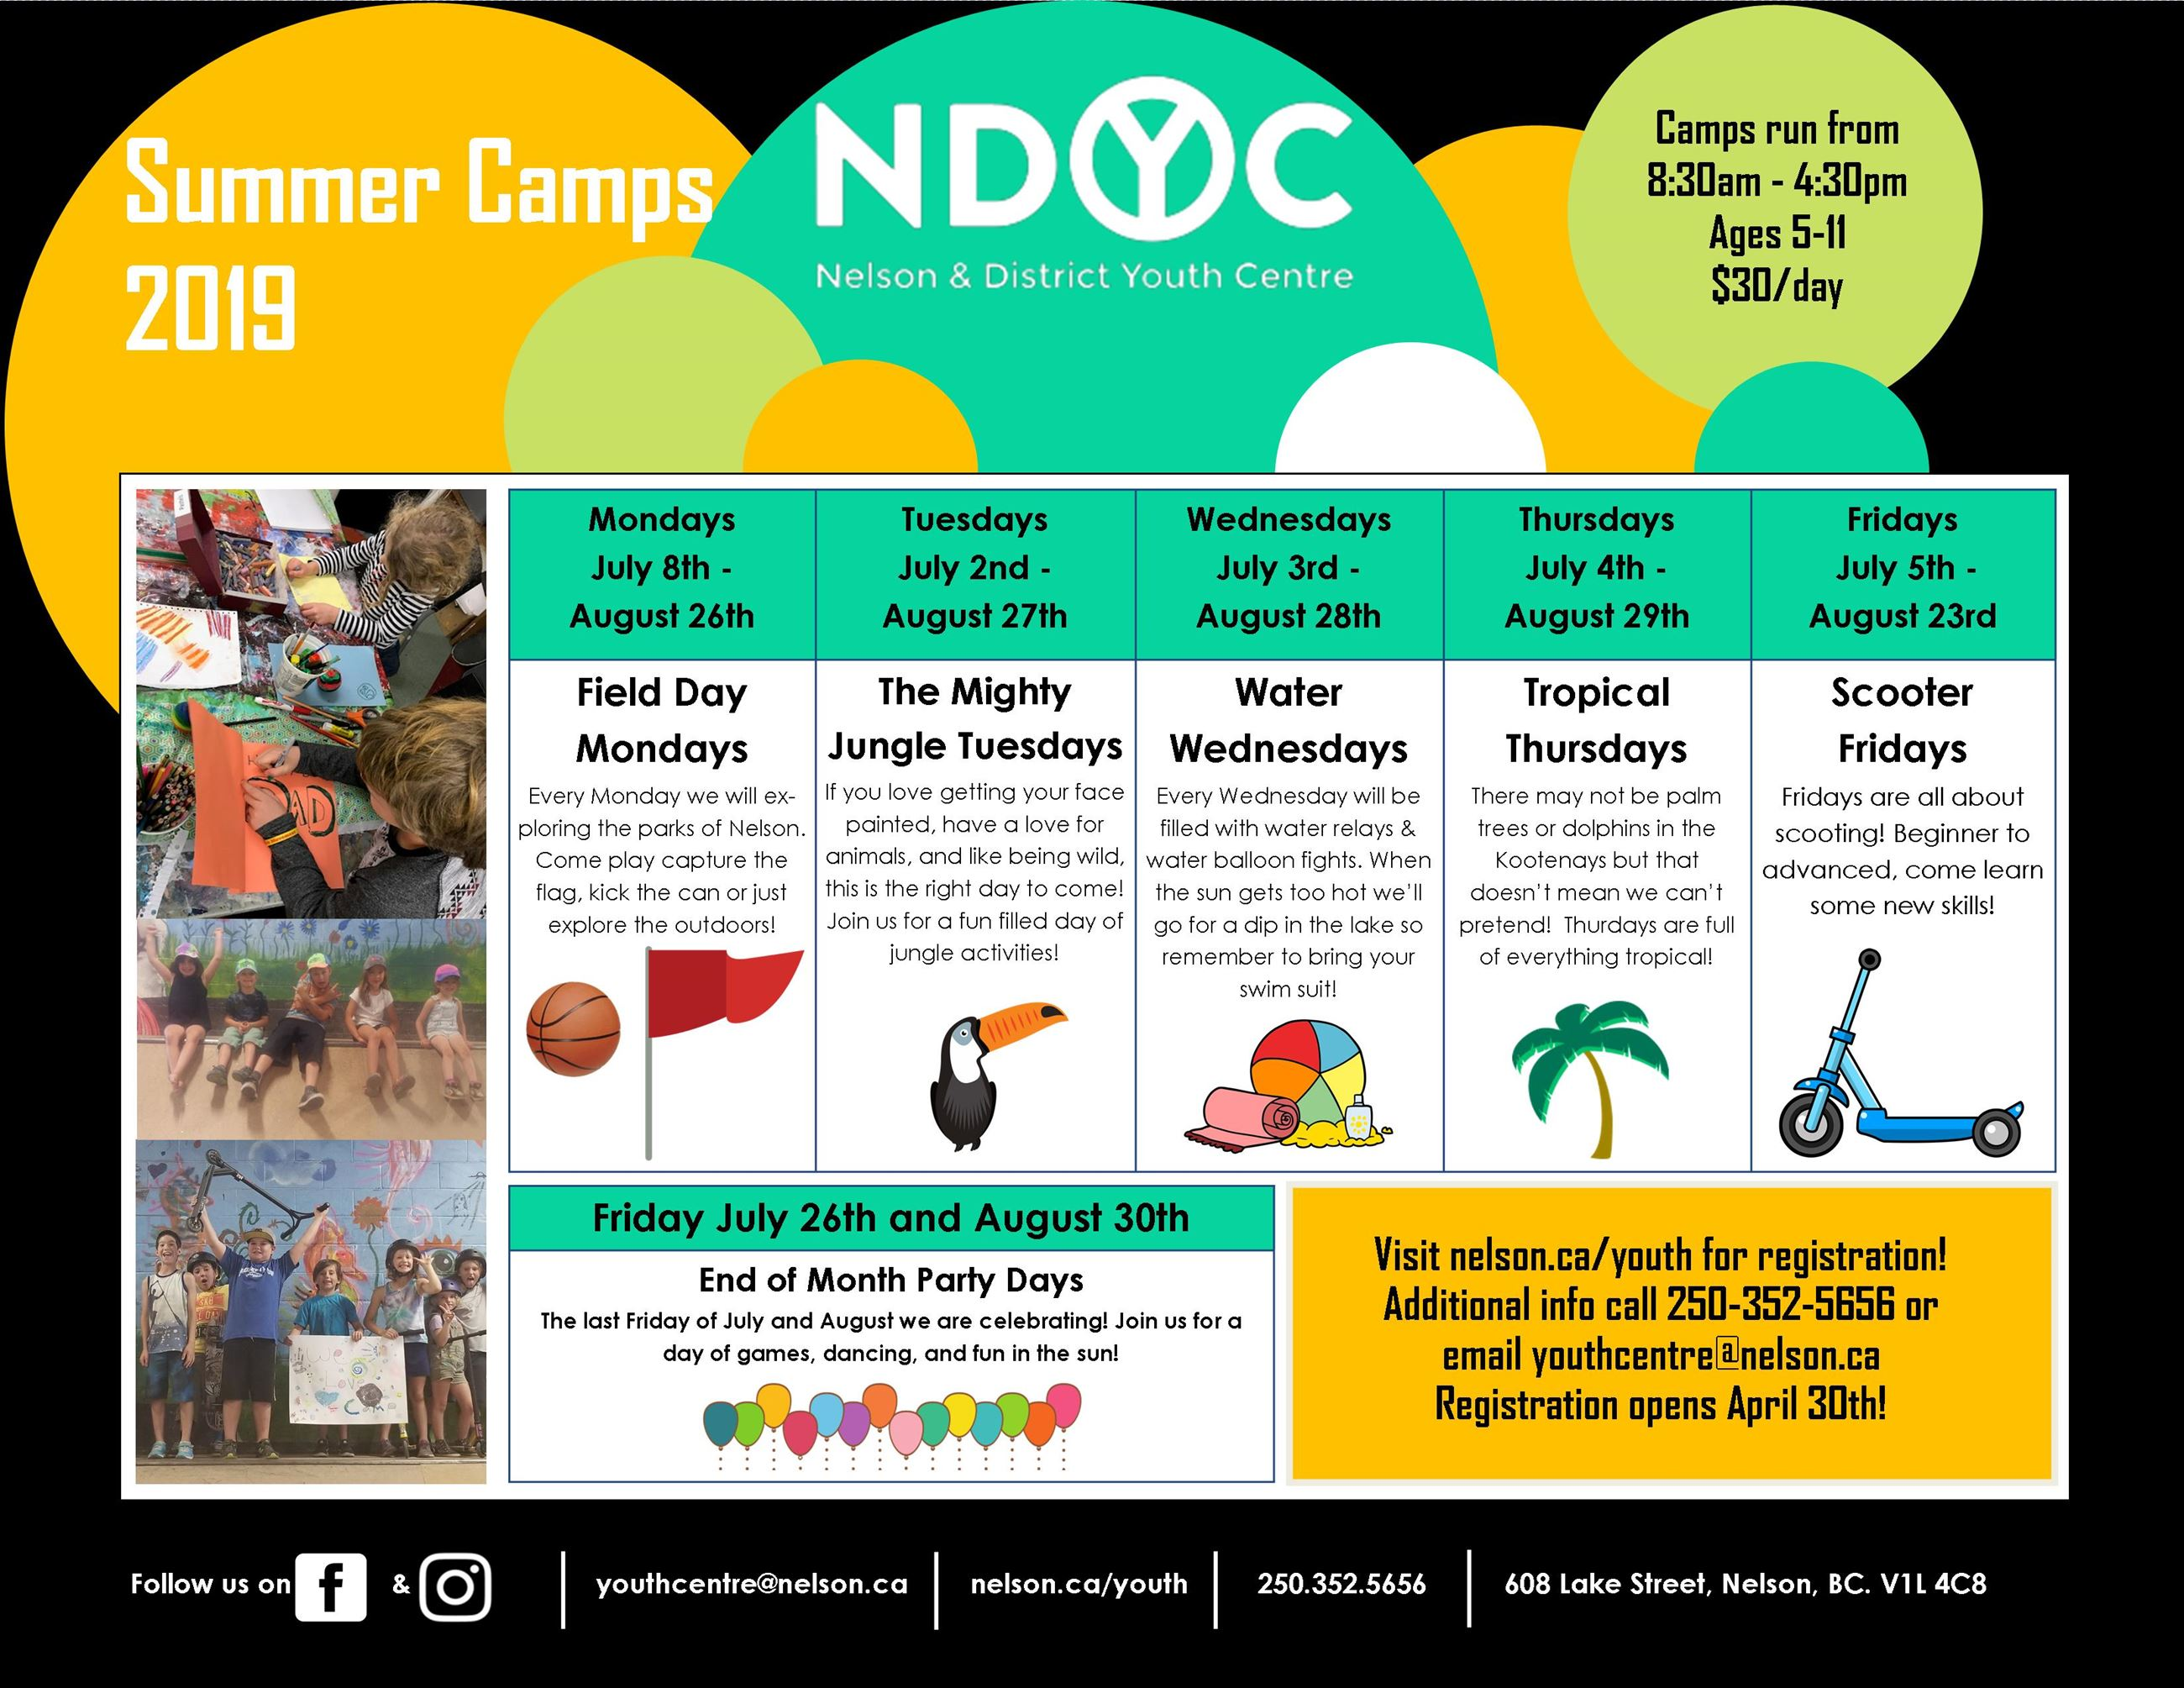 Summer Camp Schedule 2019